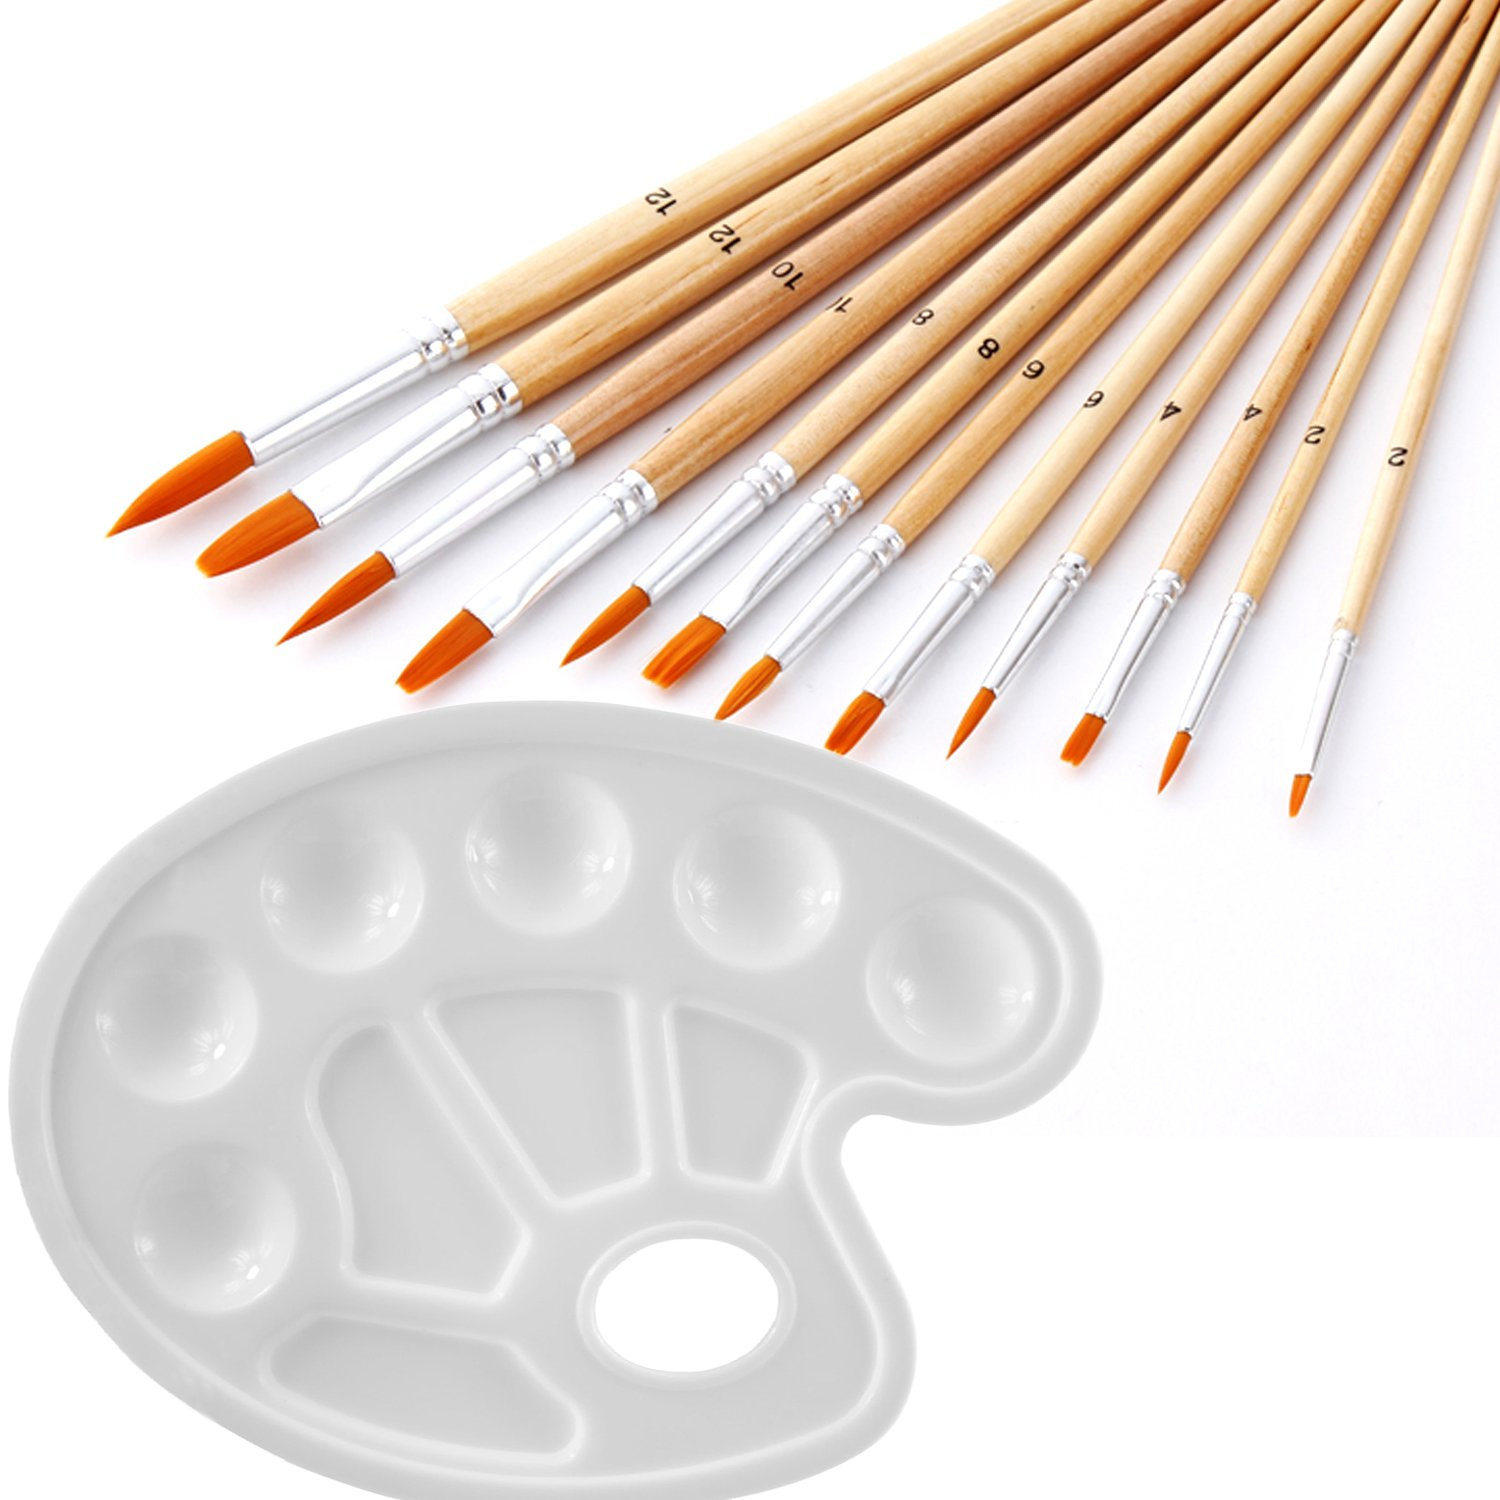 12pcs Paint Brush Set with a Paint Palette Trays, Usparkle Art Supplies Kids Art Set With Round Flat Angle Filbert Fan Points For Craft Face Body Art Painting